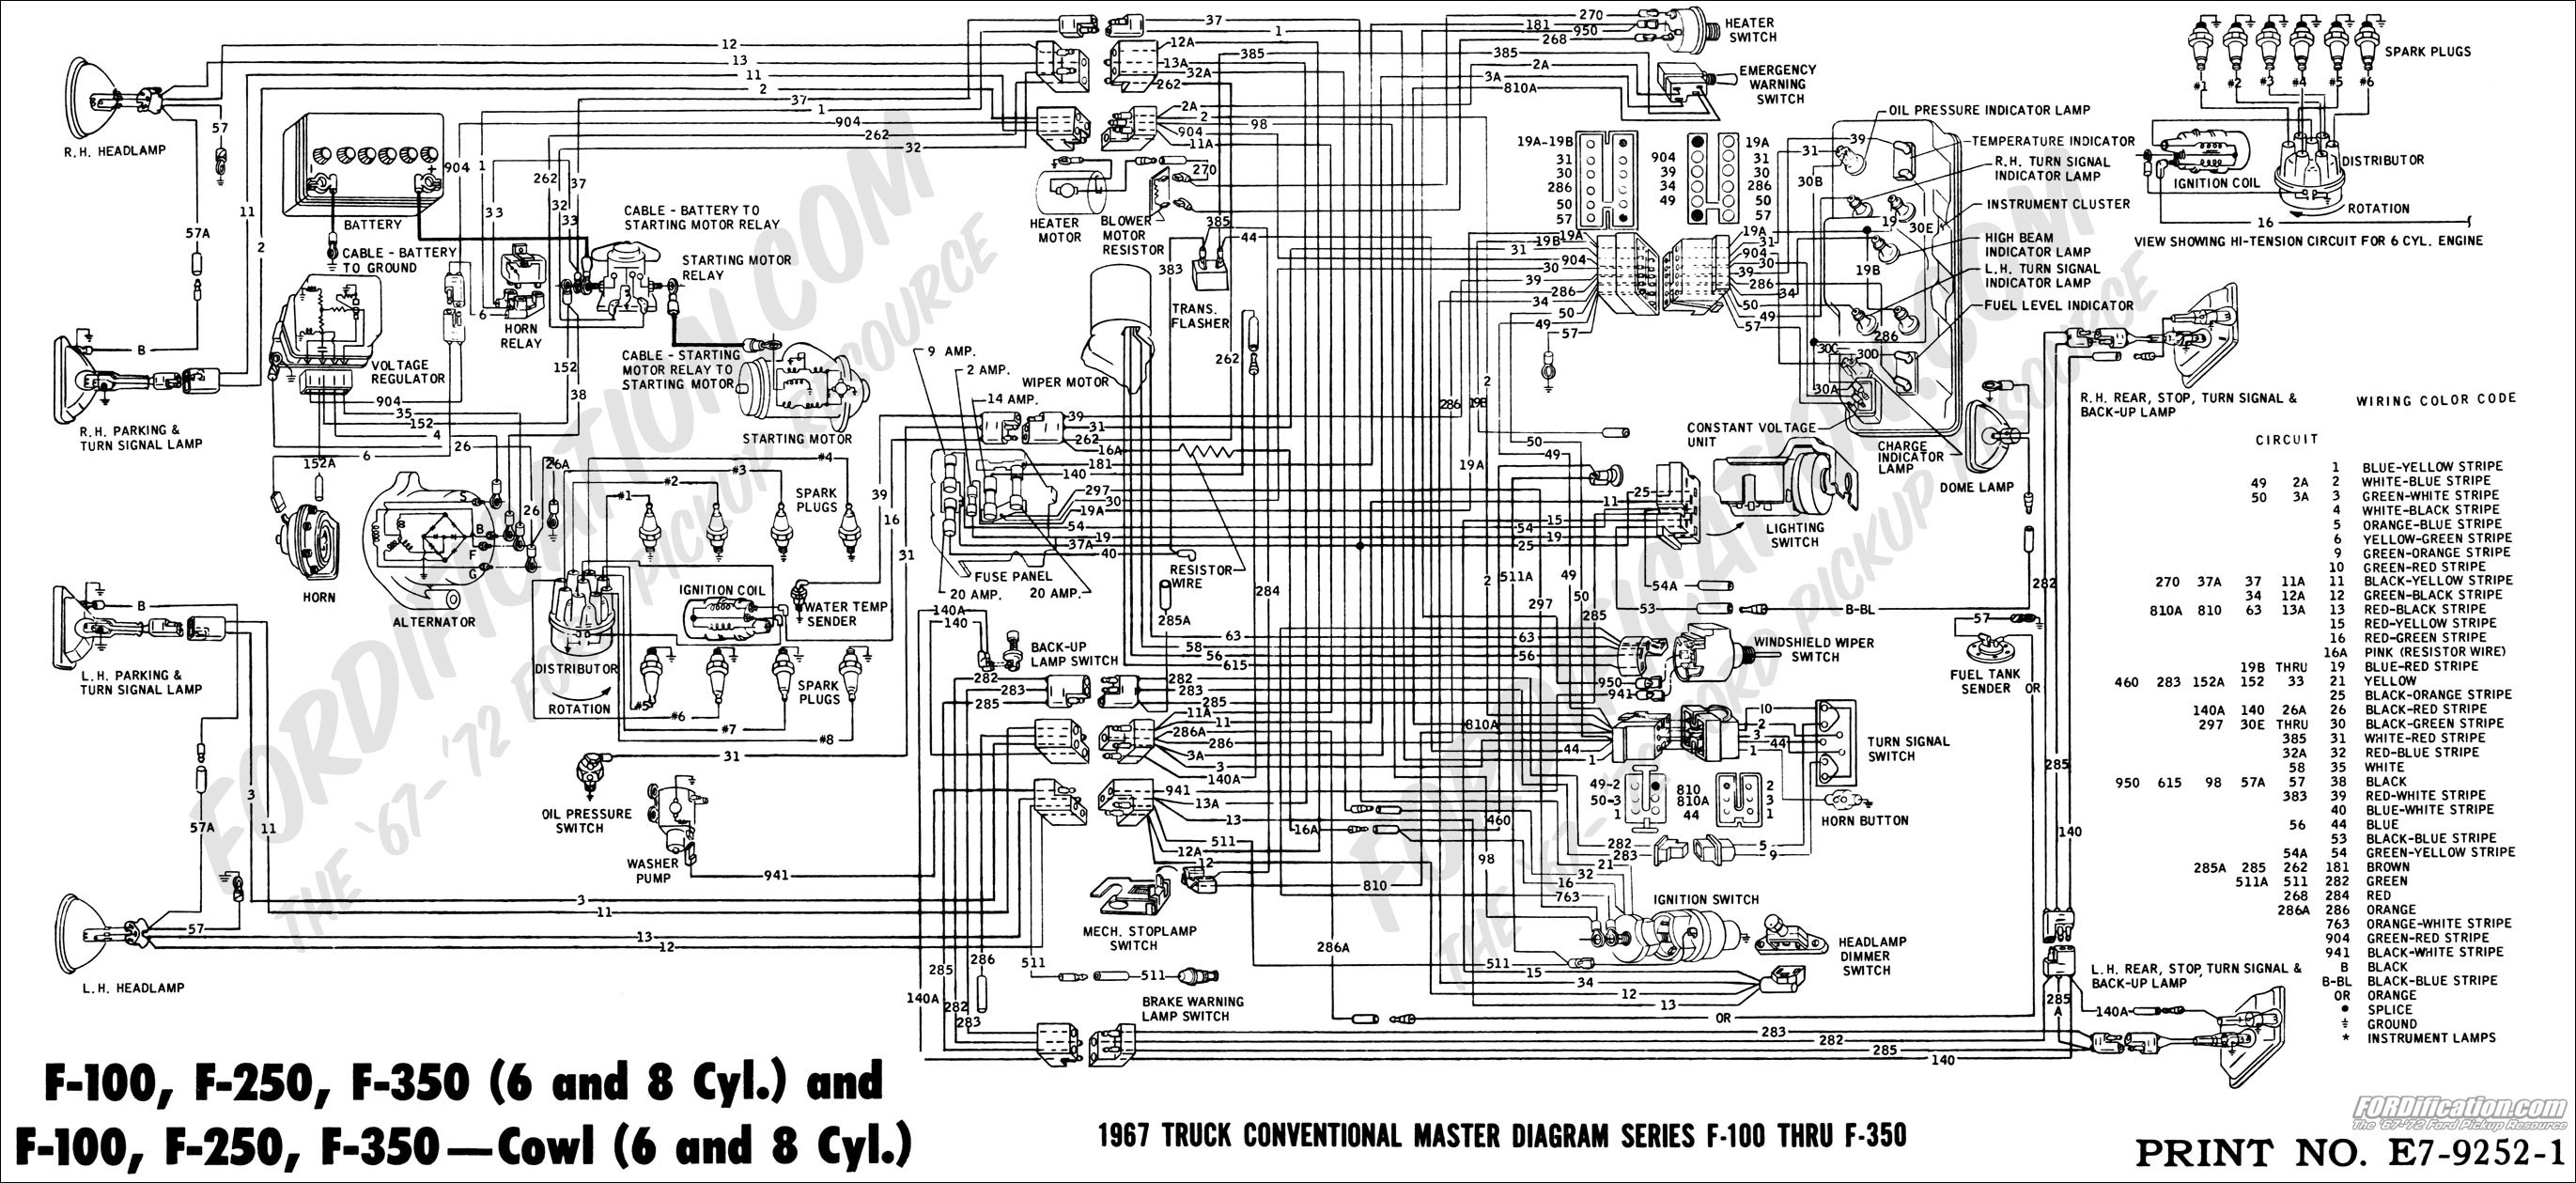 1987 F250 Wiring Harness - Wiring Diagram Library •